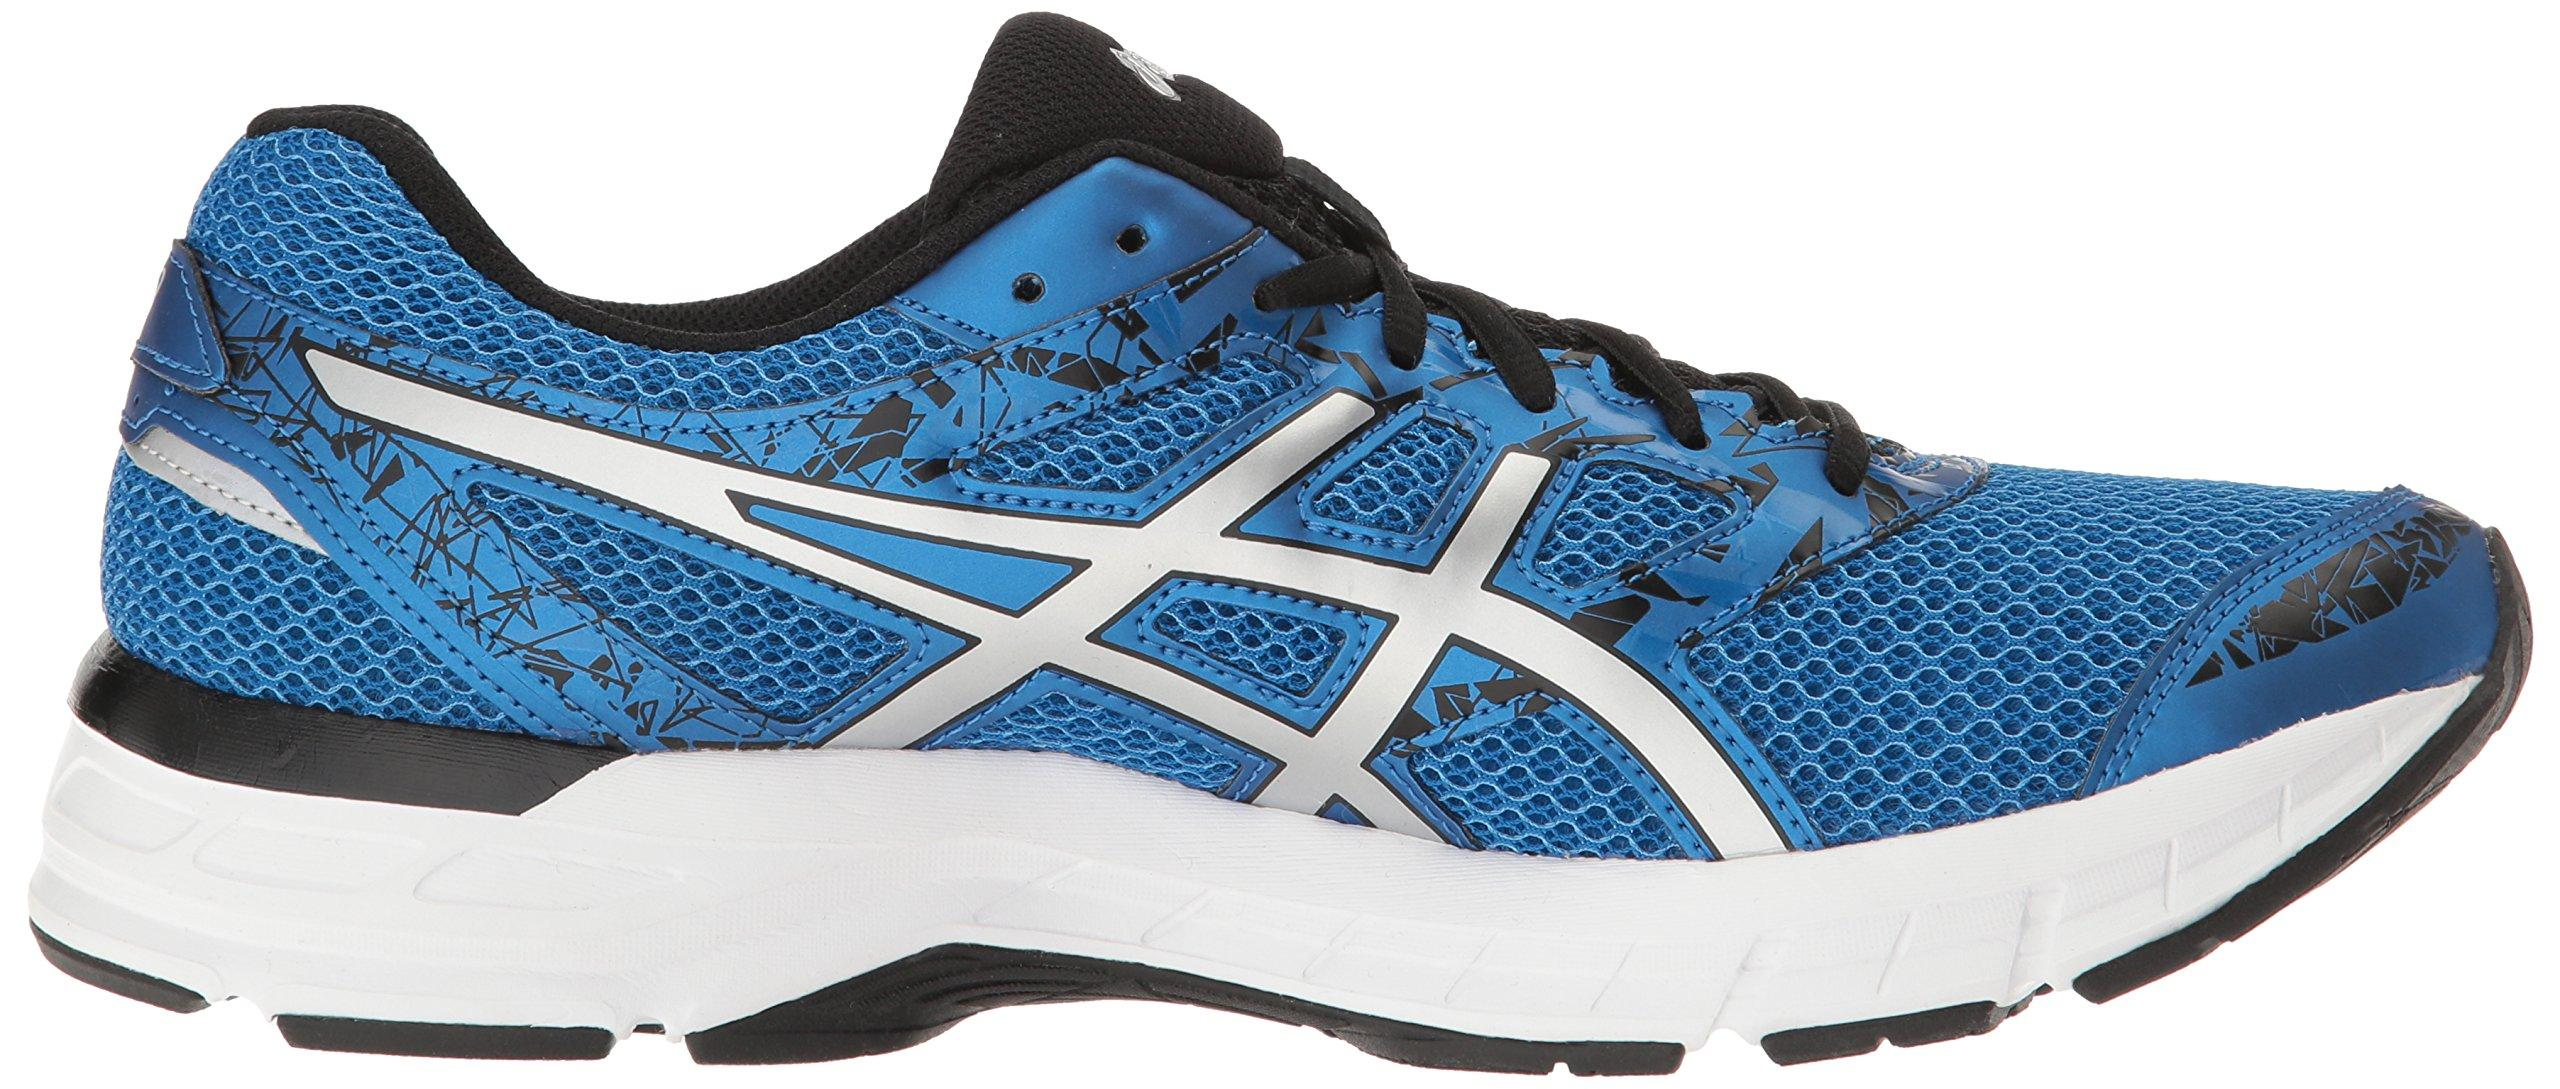 new products 05d13 f9b18 SCARPE ASICS GEL-EXCITE 4 CLASSICS BLUE SILVER/BLACK T6E3N4293 RUNNING